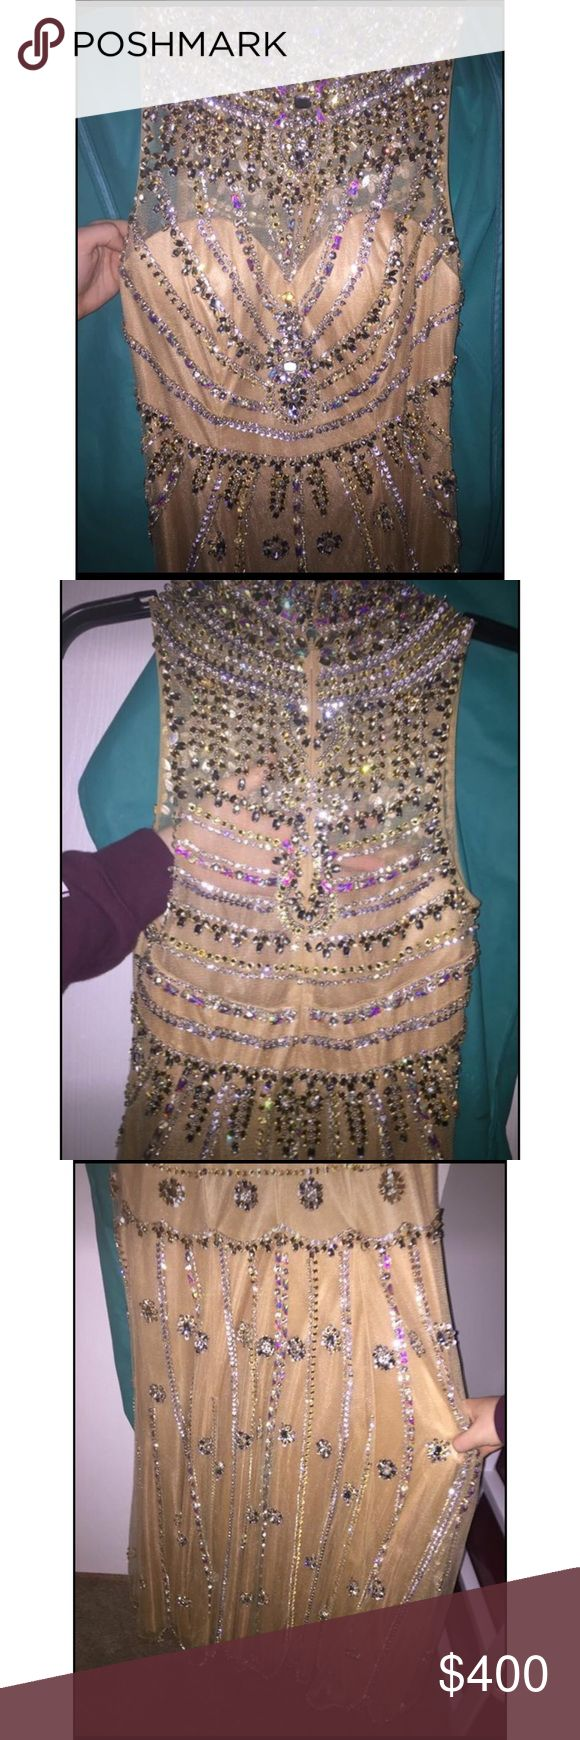 Sherri Hill dress Gold/champagne colored sequin&jewel dress. Looks amazing on and way better in person! Worn for prom. Also have earrings and shoes that match for sale also! Very open to offers! Sherri Hill Dresses Prom